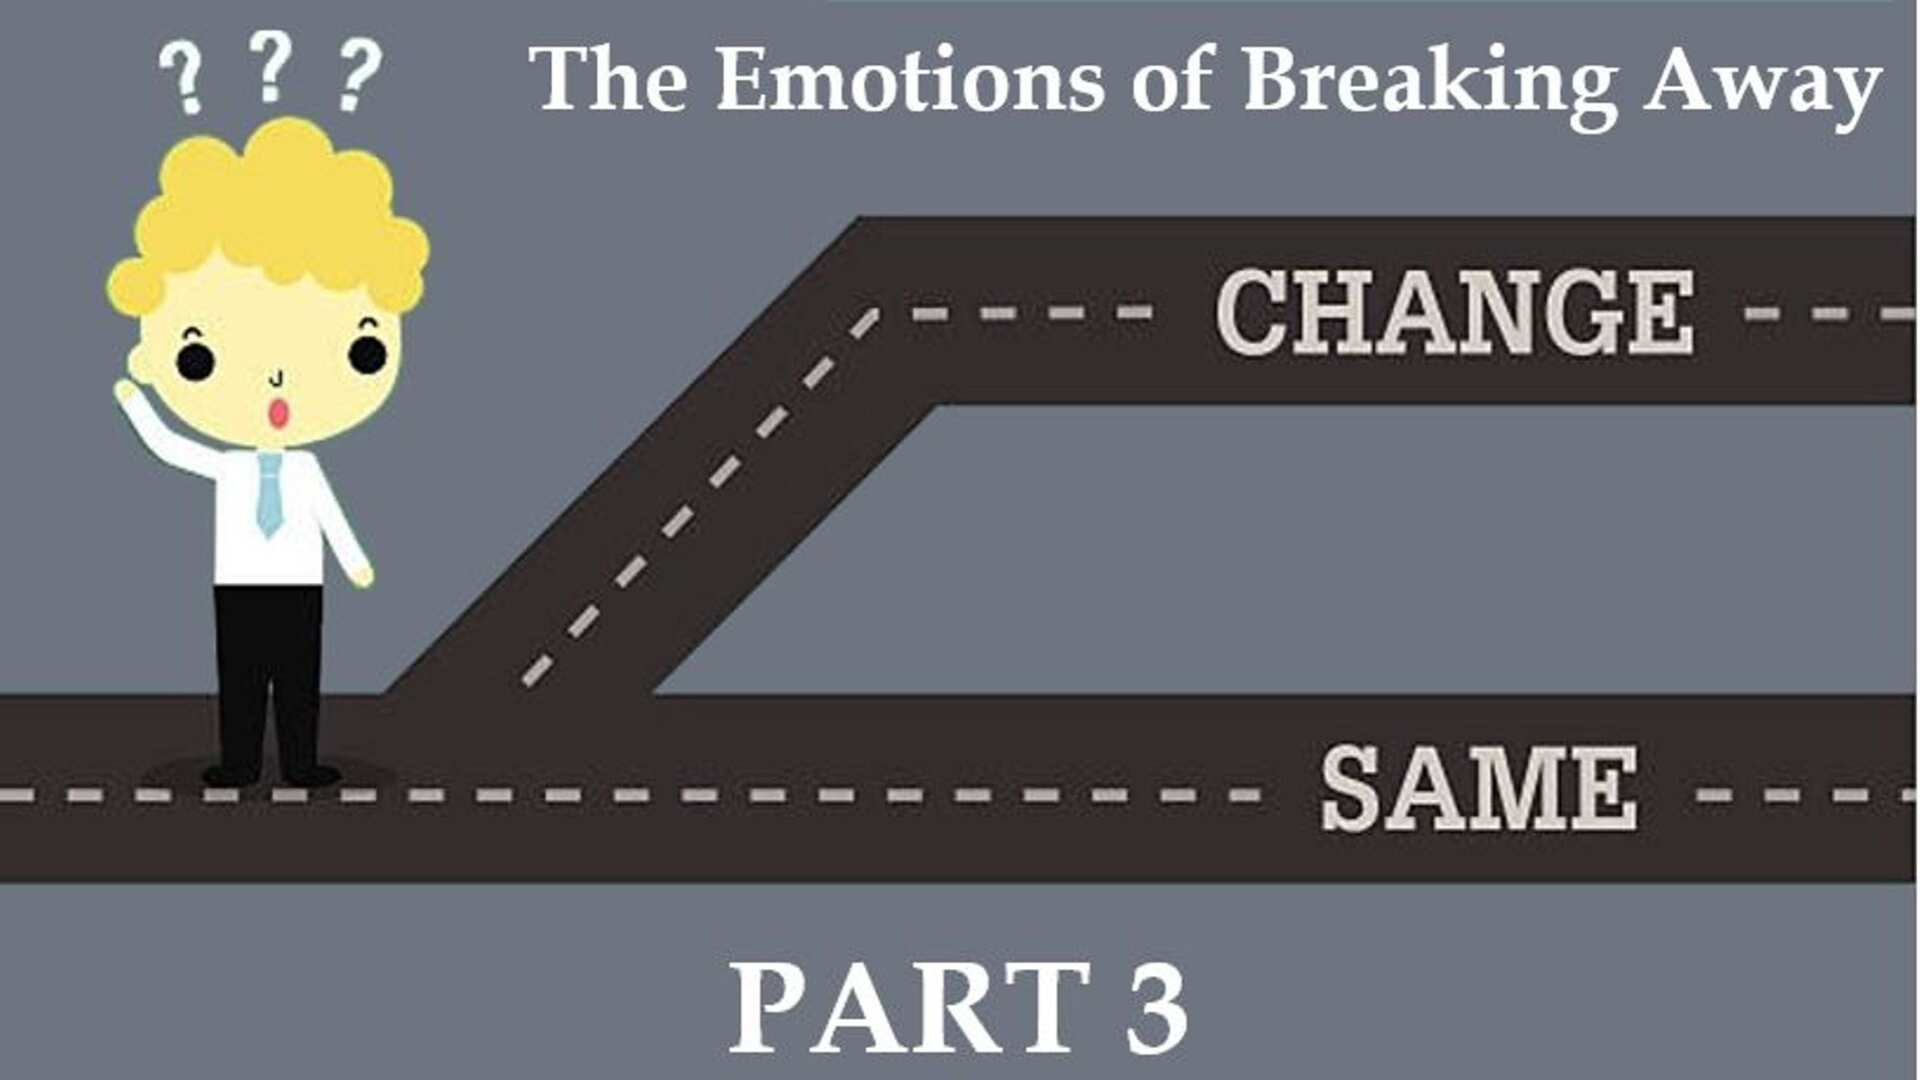 The Fear of Change, Part 3:  The Emotions of Breaking Away